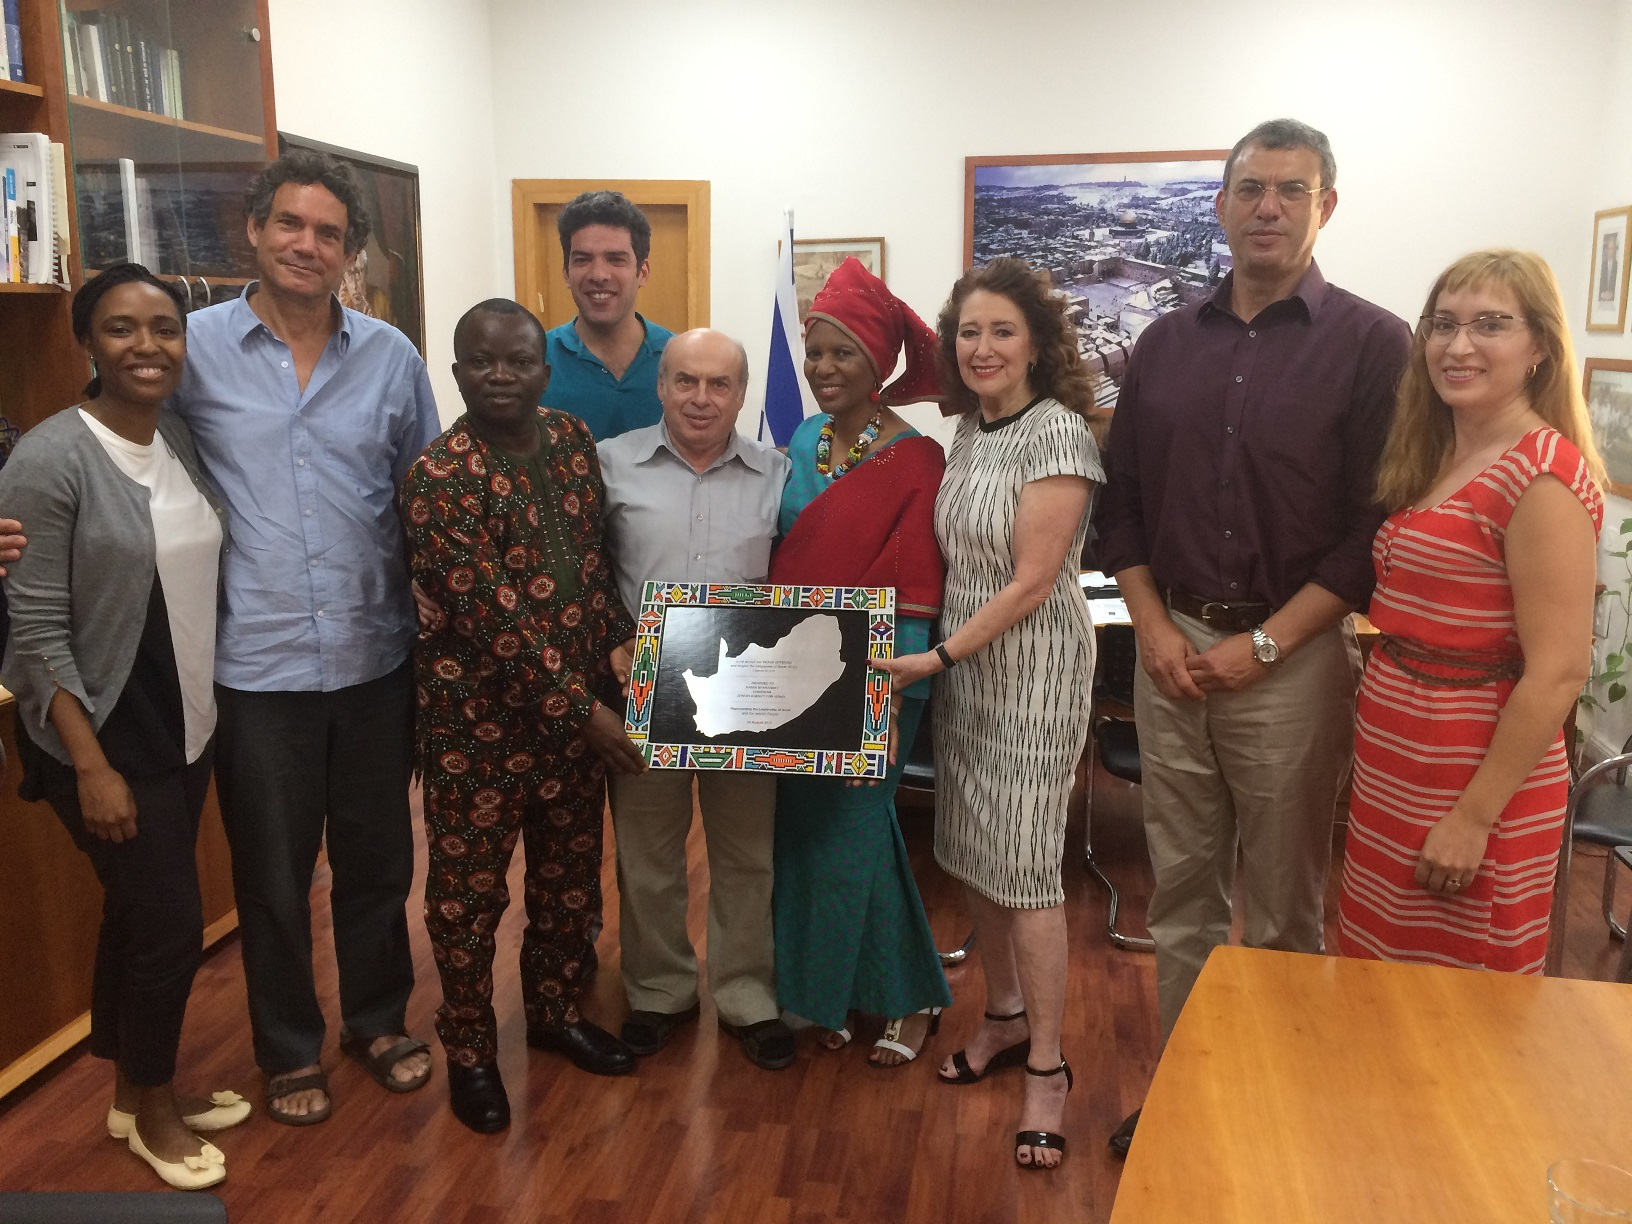 Jewish Agency Chairman Natan Sharansky with African Christian leaders, July 27, 2016. Credit: Avi Mayer for The Jewish Agency for Israel.